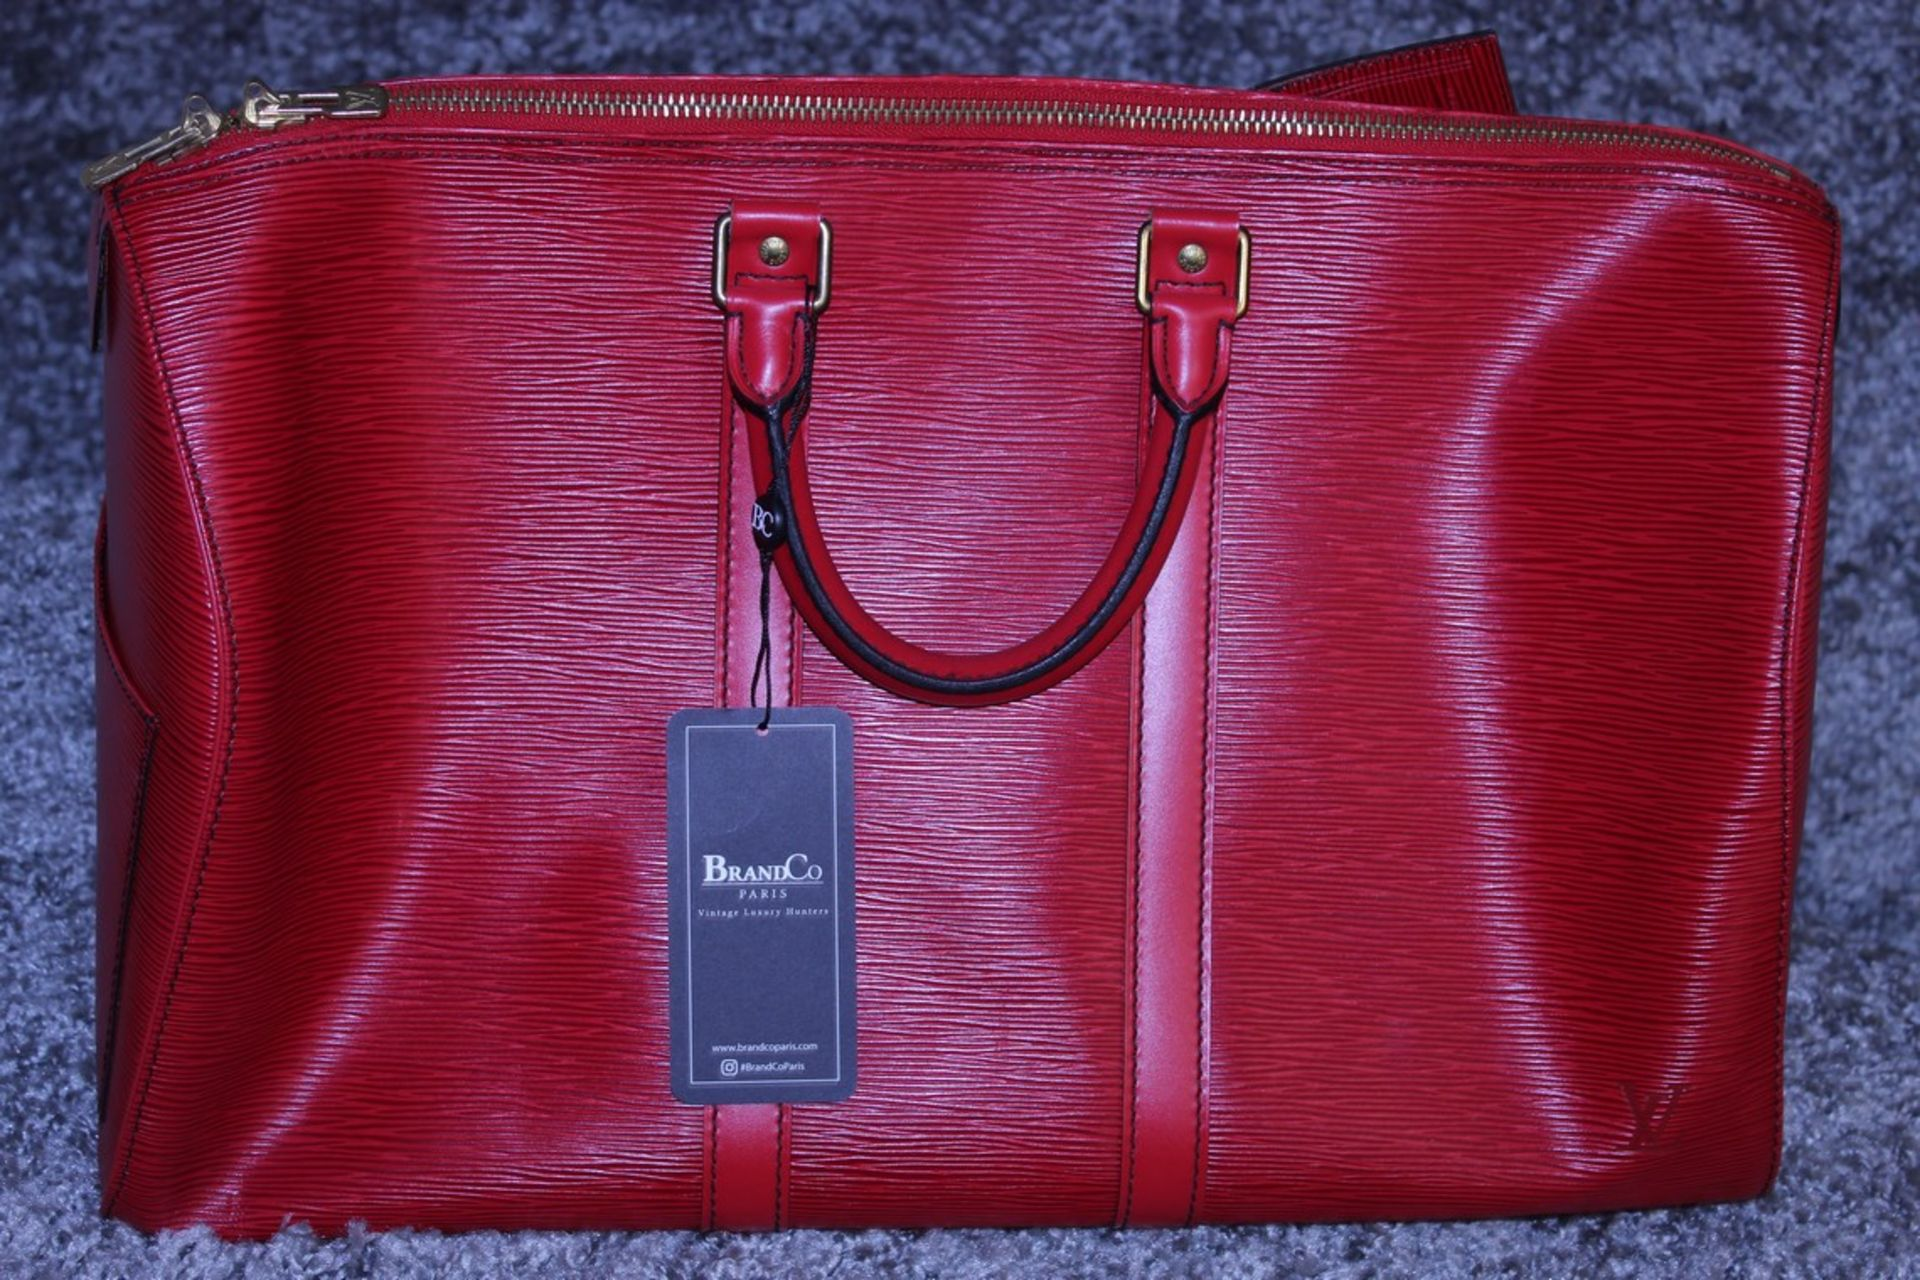 RRP £1,400 Louis Vuitton Keepall 45 Travel Bag, Red Calf Red Epi Leather, 48X28X20Cm, (Production - Image 2 of 4